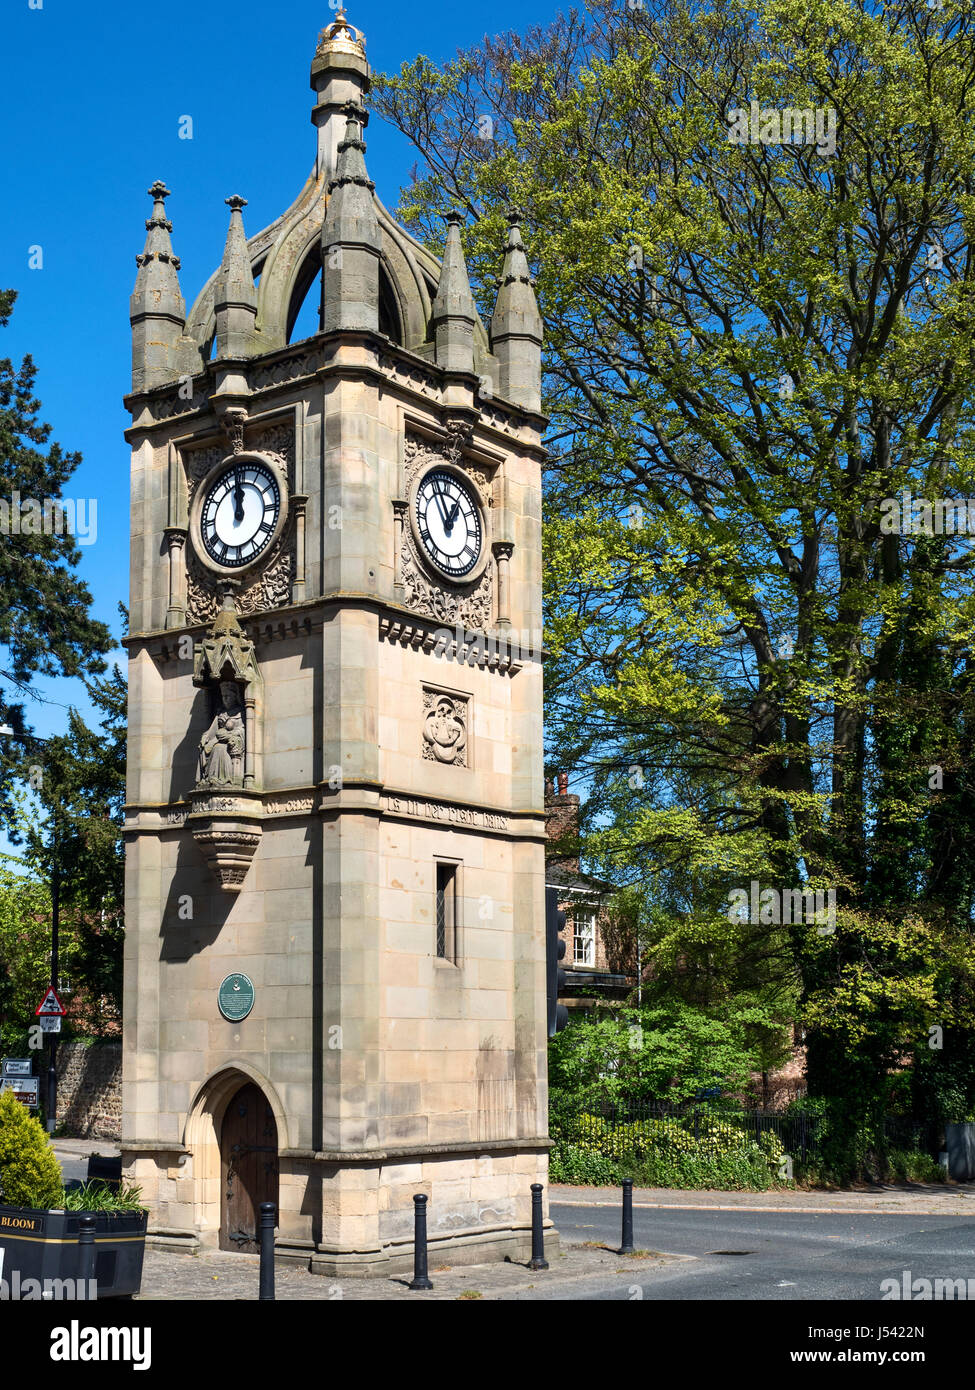 Clock Tower Built to Commemorate the Diamond Jubliee of Queen Victoria at North Street in Ripon North Yorkshire - Stock Image